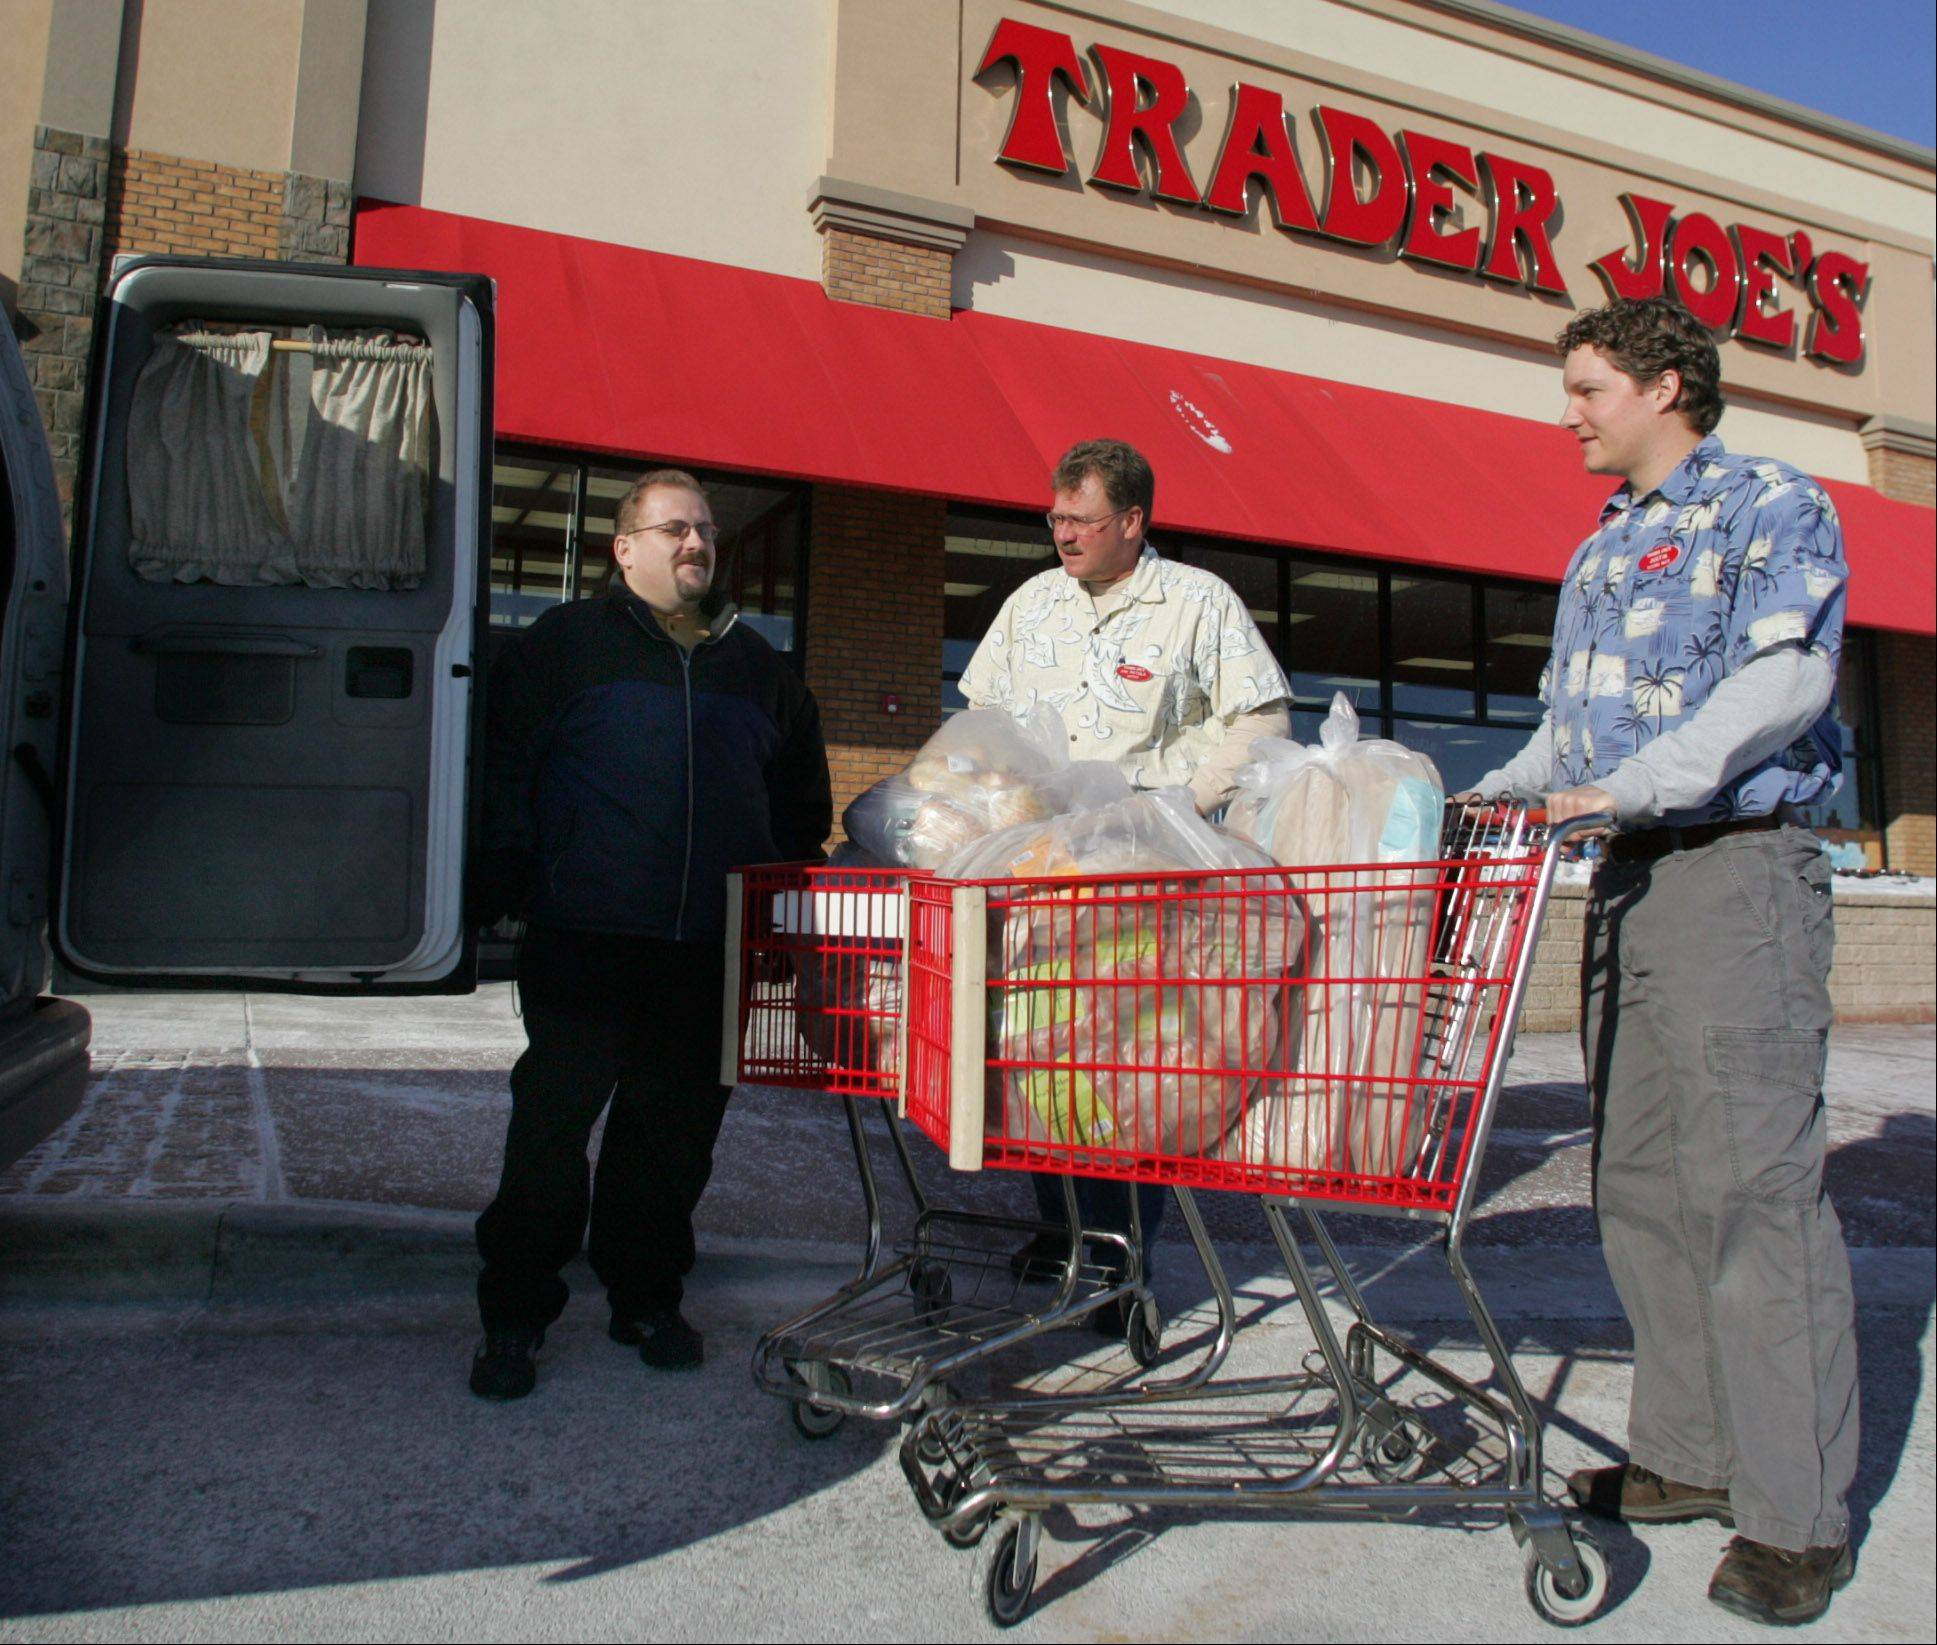 Libertyville finally snares Trader Joe's store